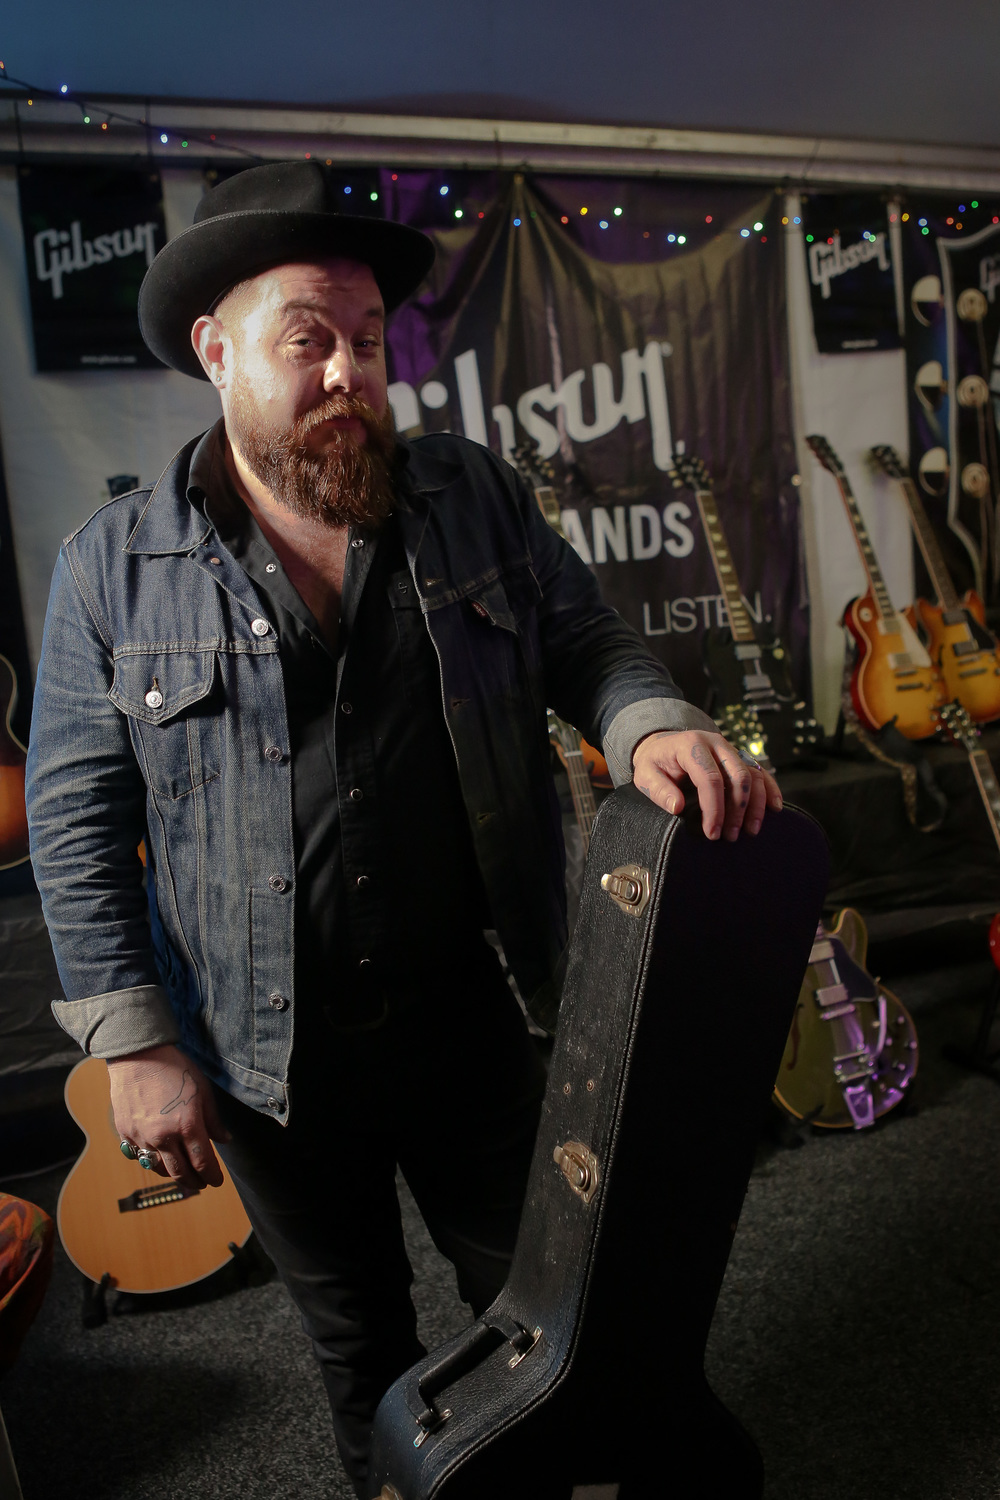 nathaniel rateliff, backstage in the gibson tent